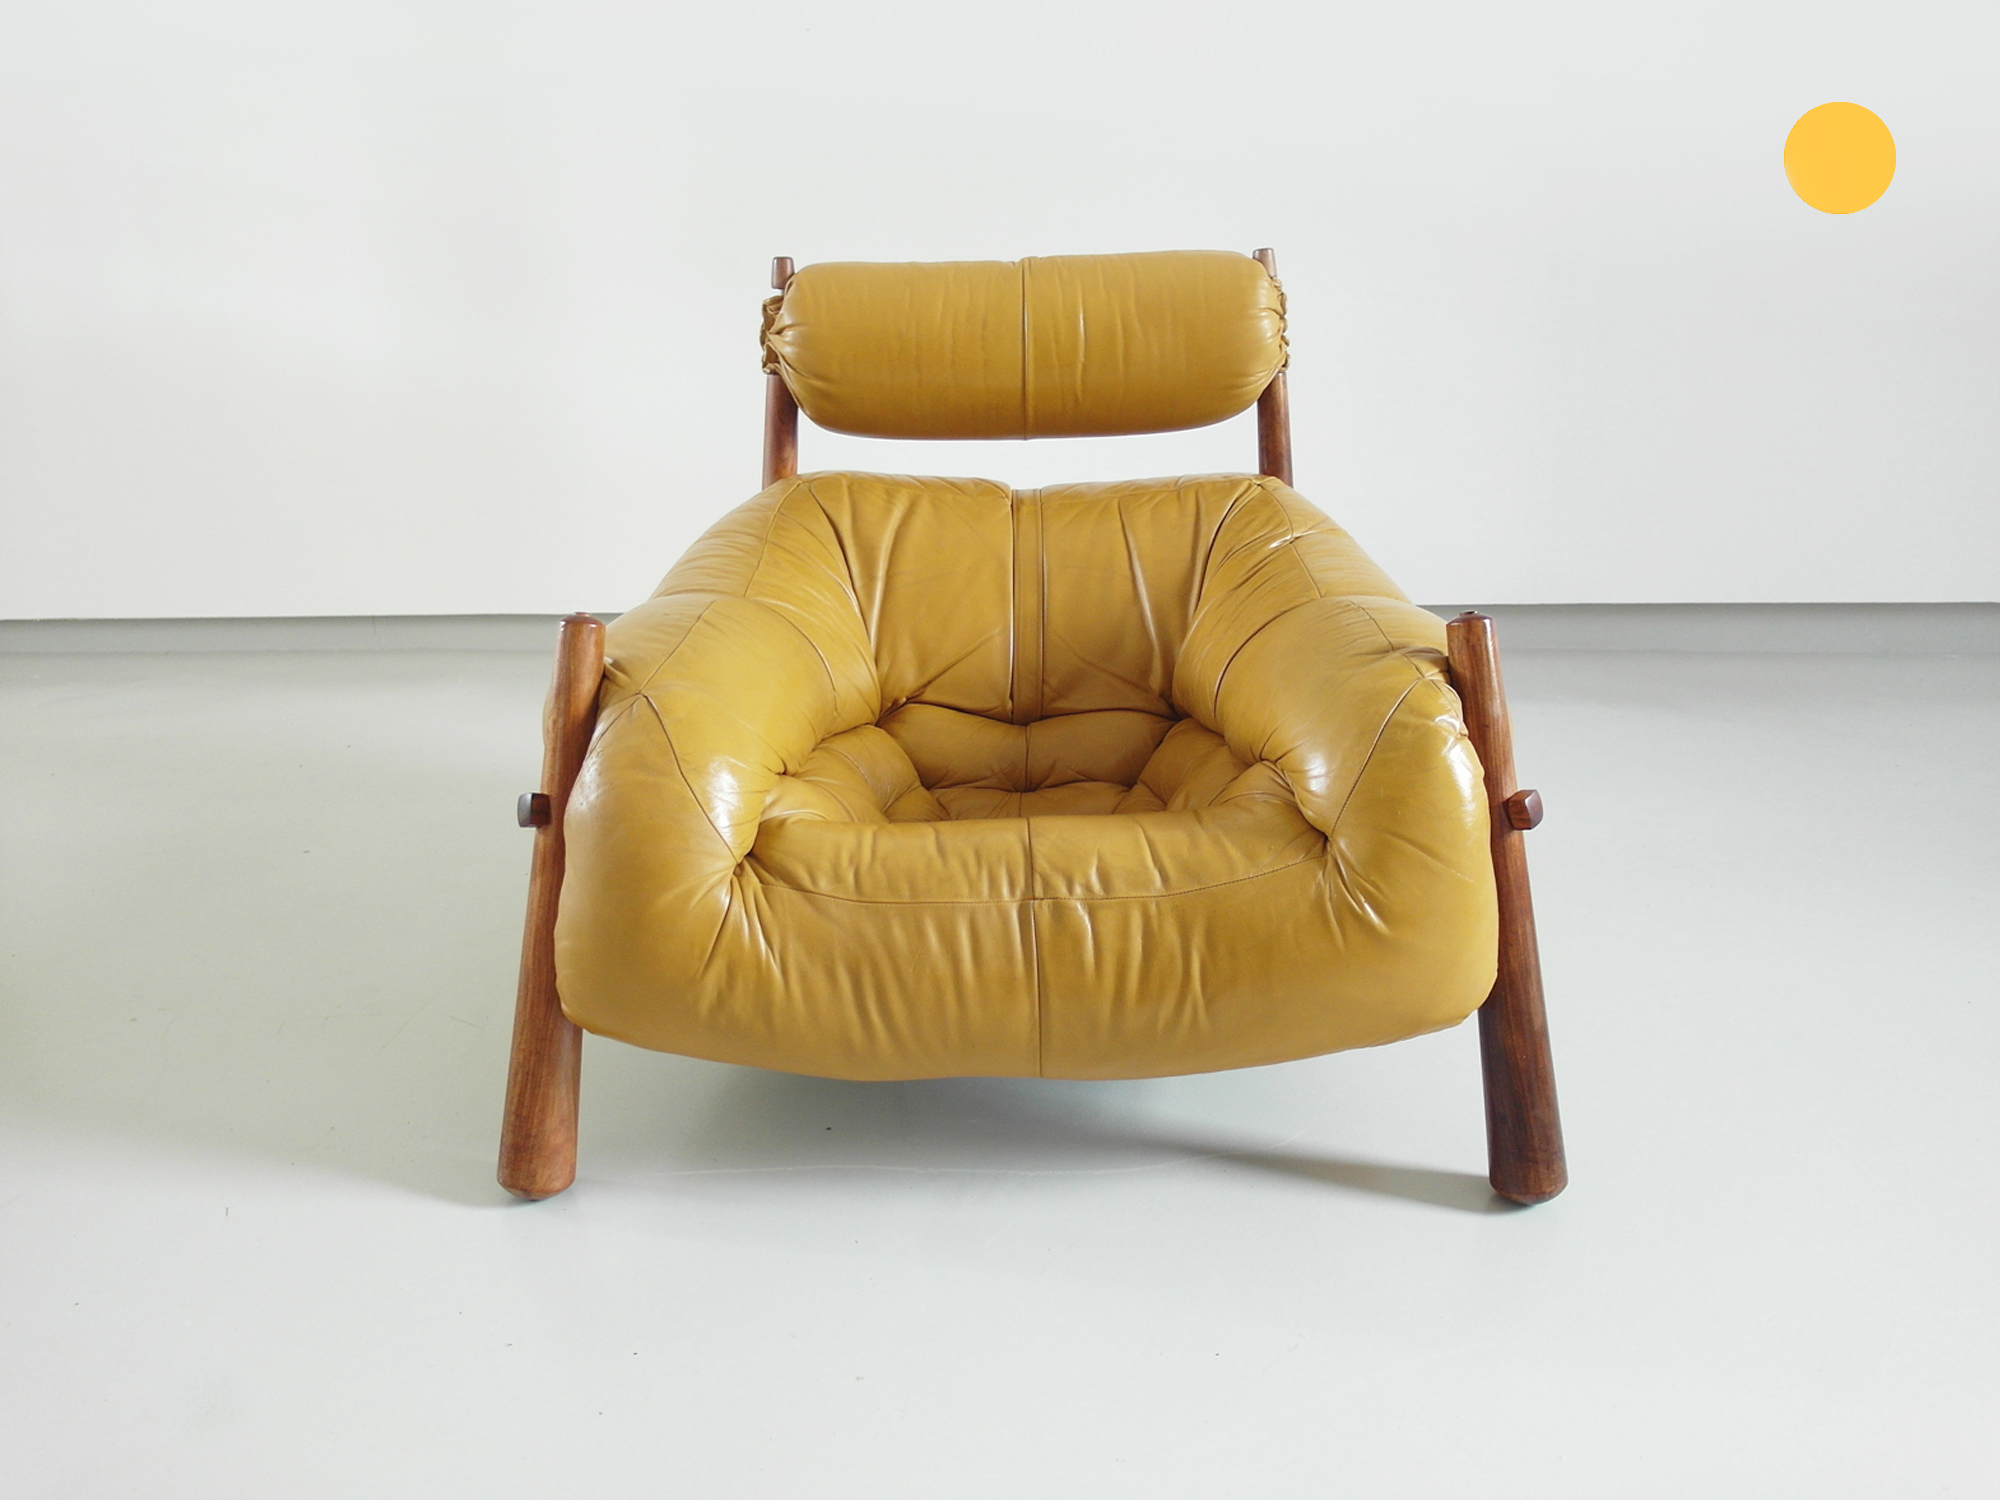 Fabulous Percival Lafer Lounge Chair For Lafer S A Ind E Com Ibusinesslaw Wood Chair Design Ideas Ibusinesslaworg